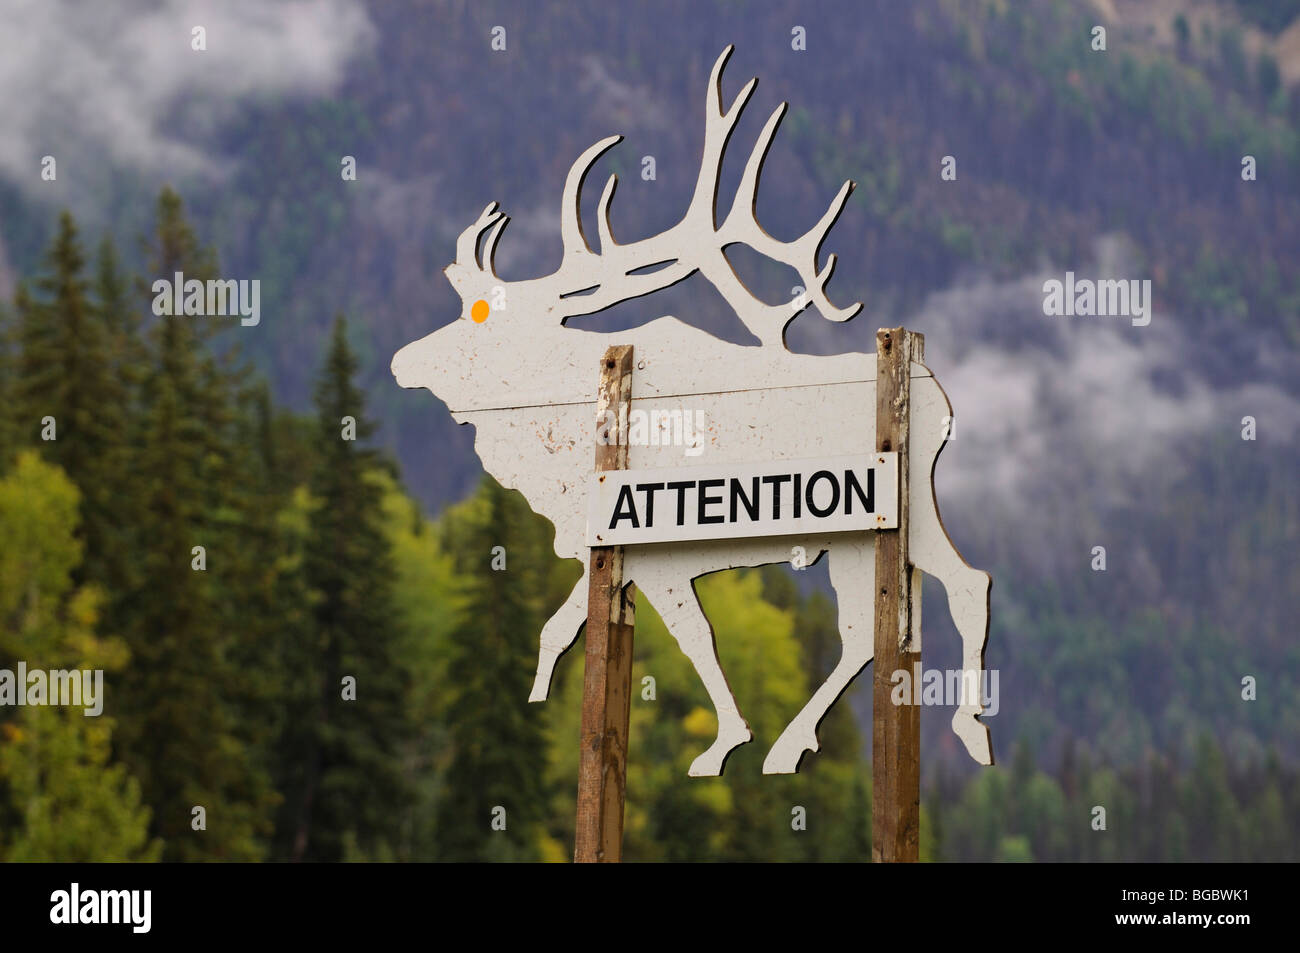 Warning sign, deer, Trans Canada Highway, Revelstoke, British Columbia, Canada Stock Photo